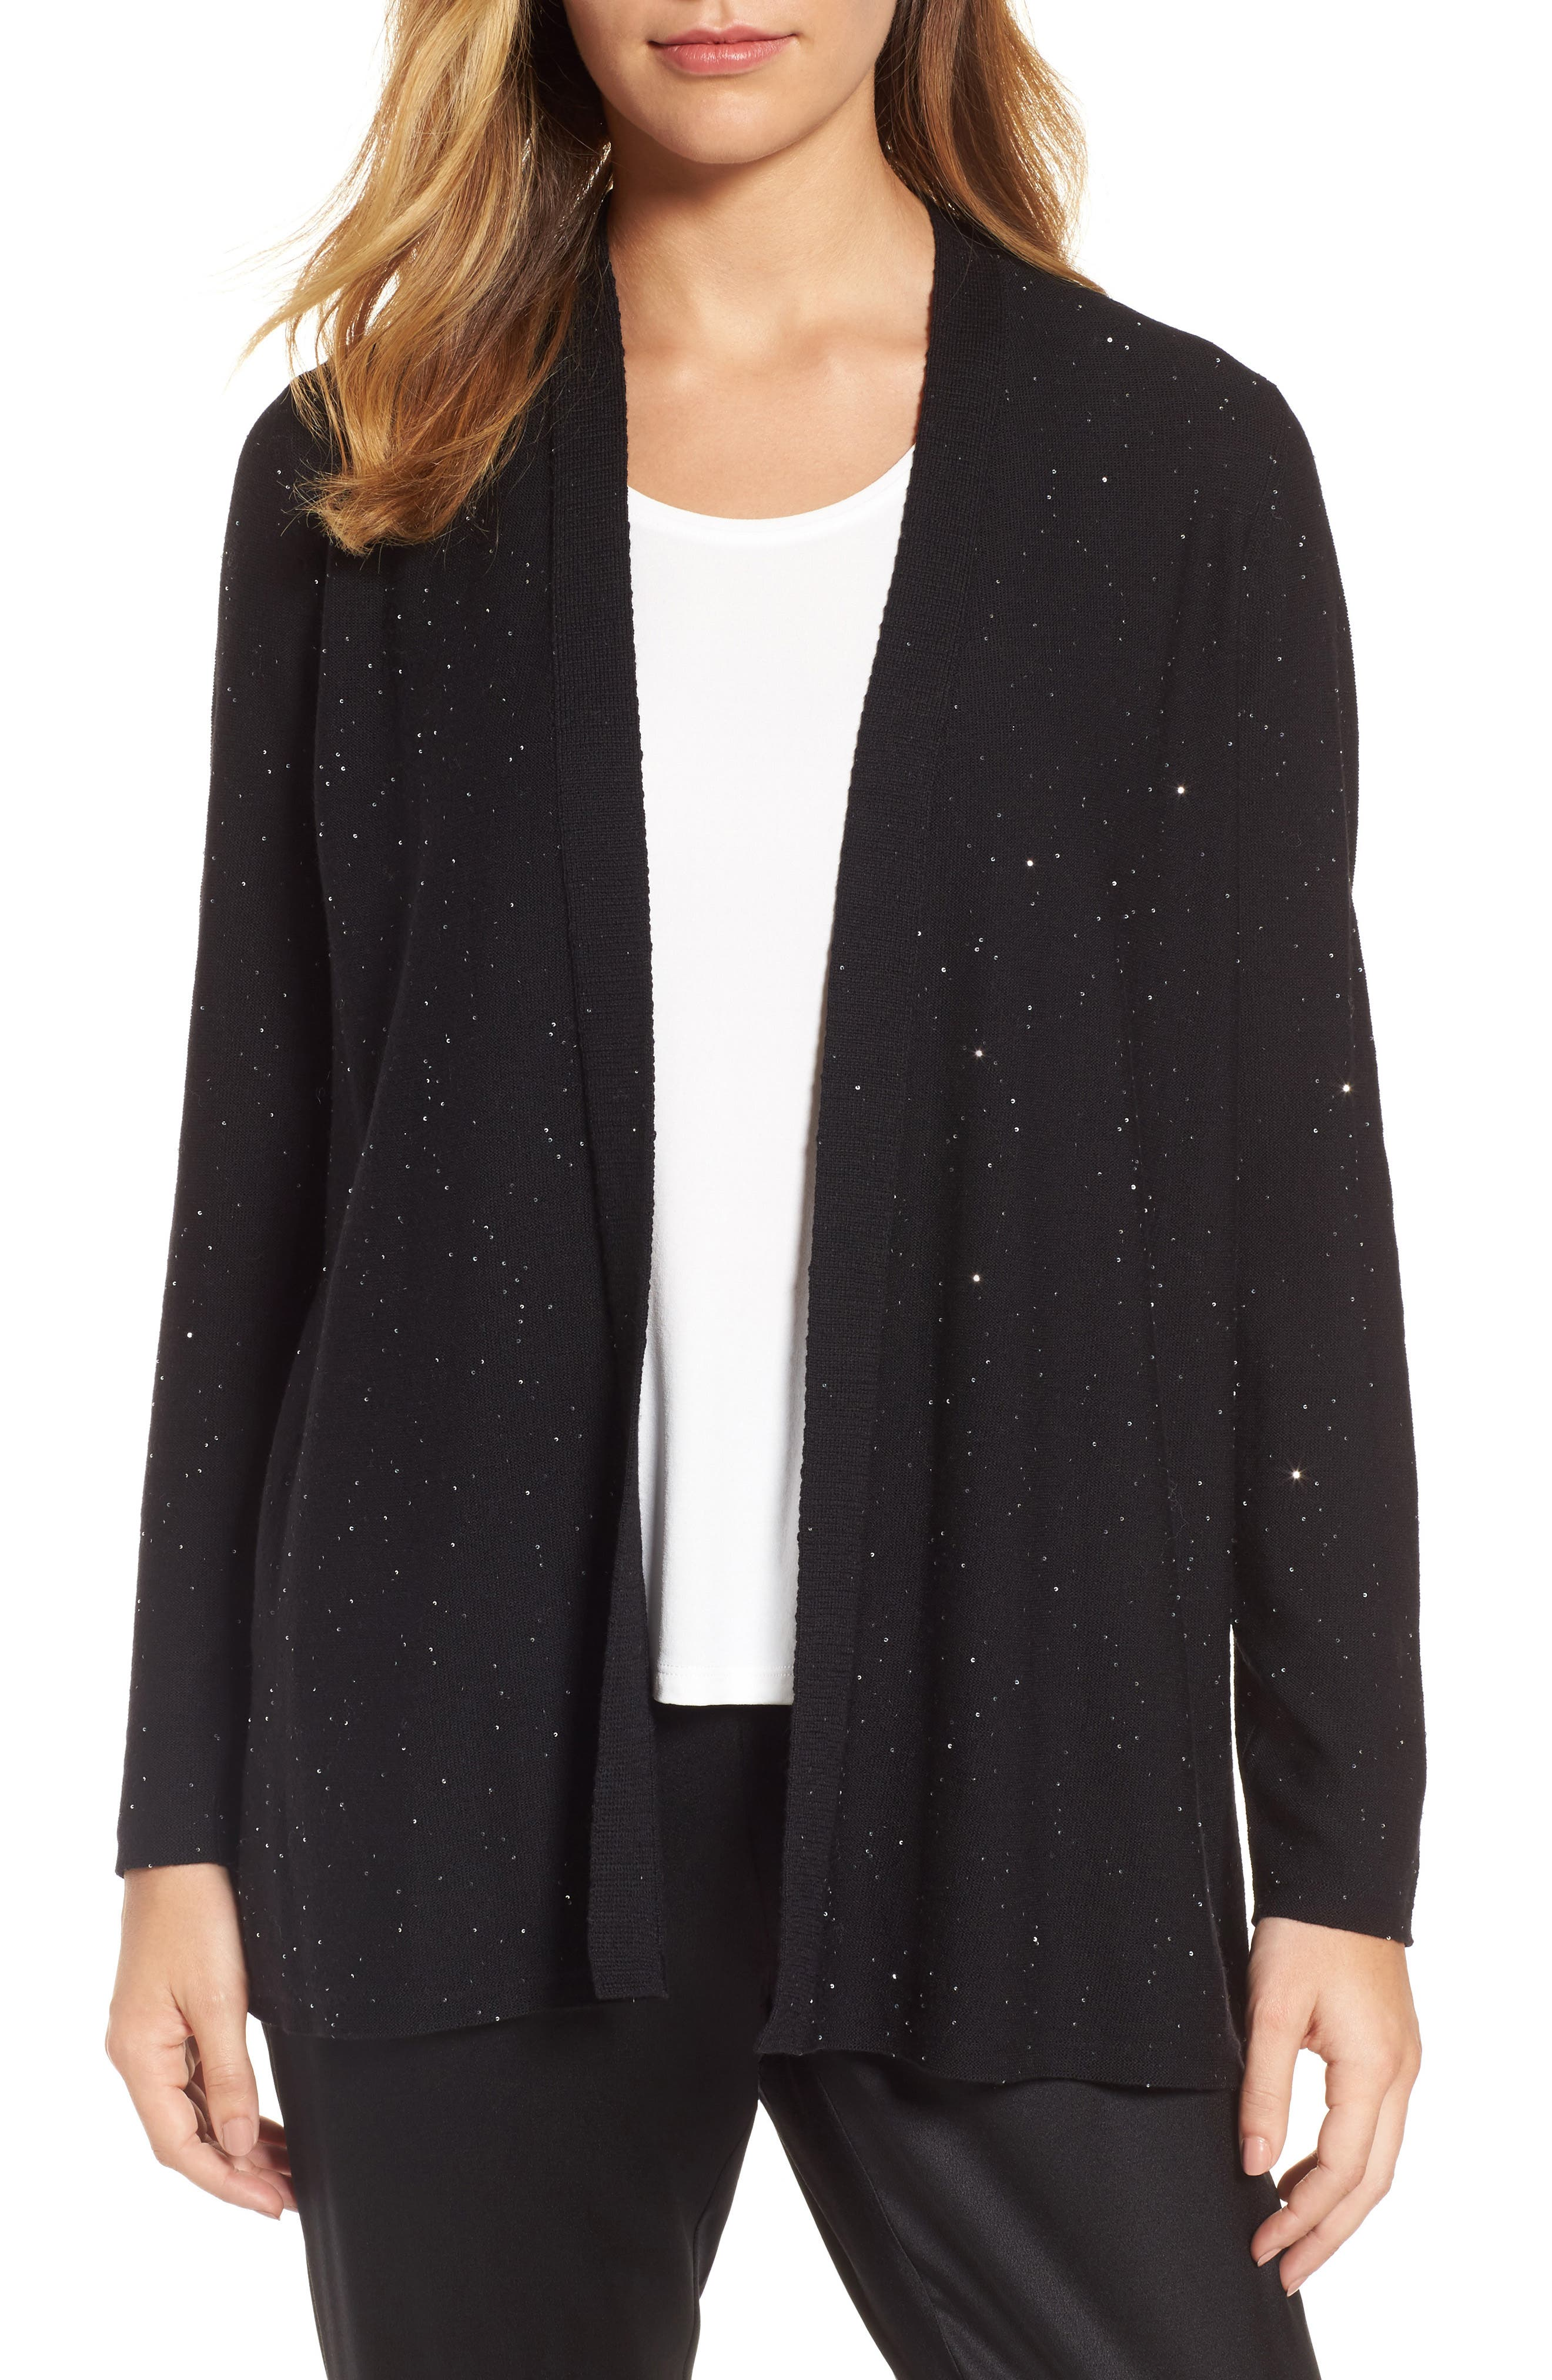 Sequin Merino Wool Cardigan,                             Main thumbnail 1, color,                             001